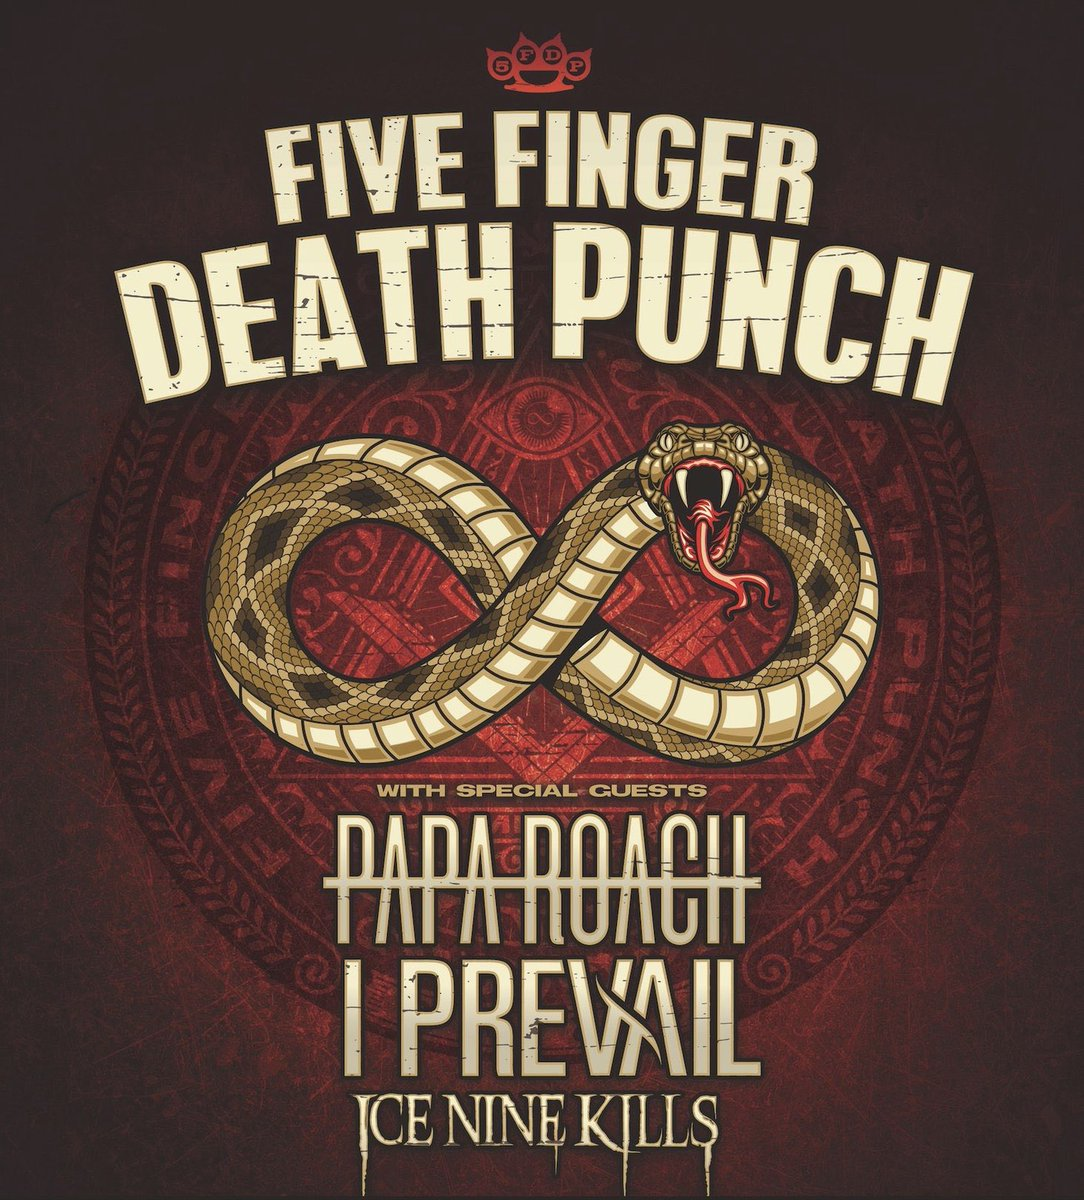 👉 Important Show Information: Five Finger Death Punch at PPG Paints Arena on May 14th has been rescheduled to Friday, October 30th. Your ticket will be honored for the rescheduled date. For any further ticket inquiries please reach out to point of purchase